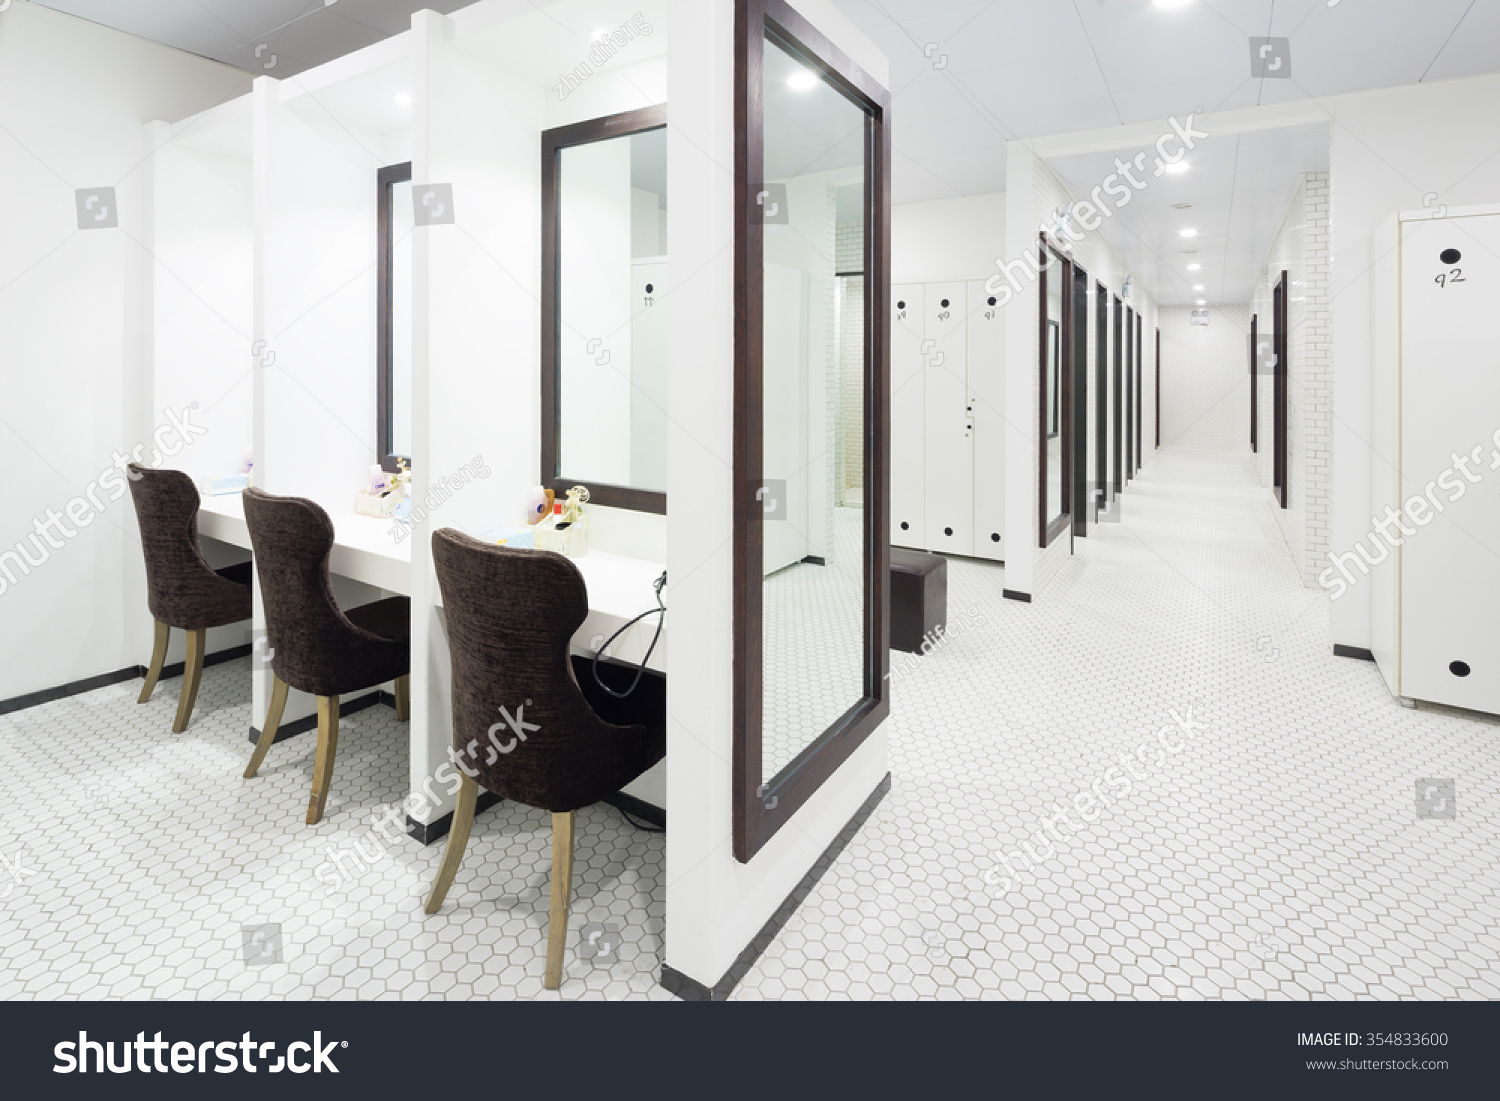 Where are modern dressing - Furniture And Design Of Modern Dressing Room